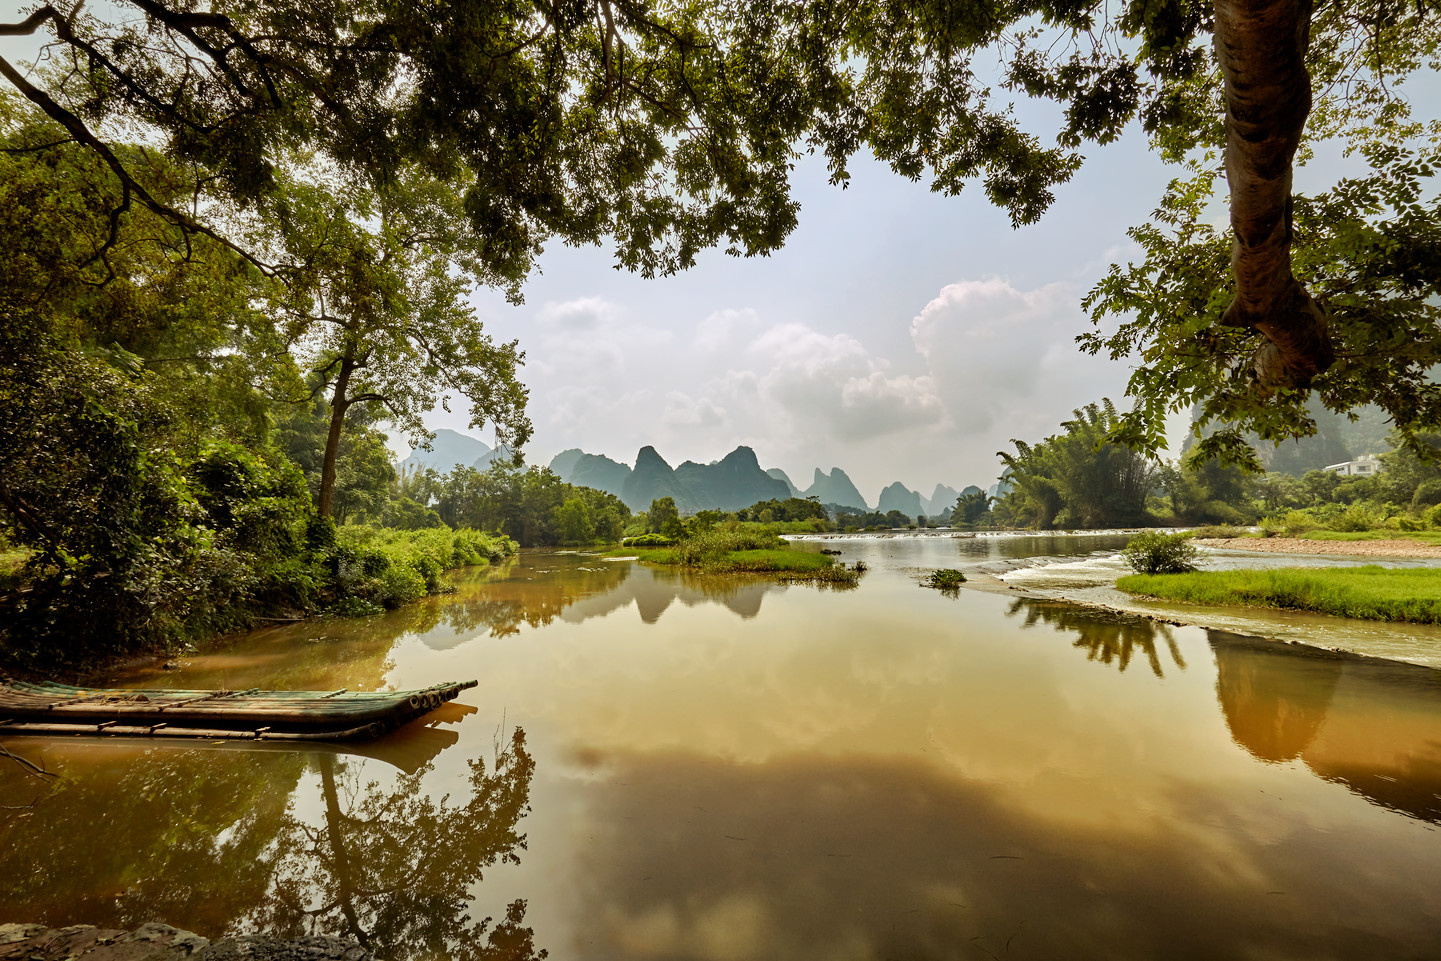 Yulong river by Yannick K.